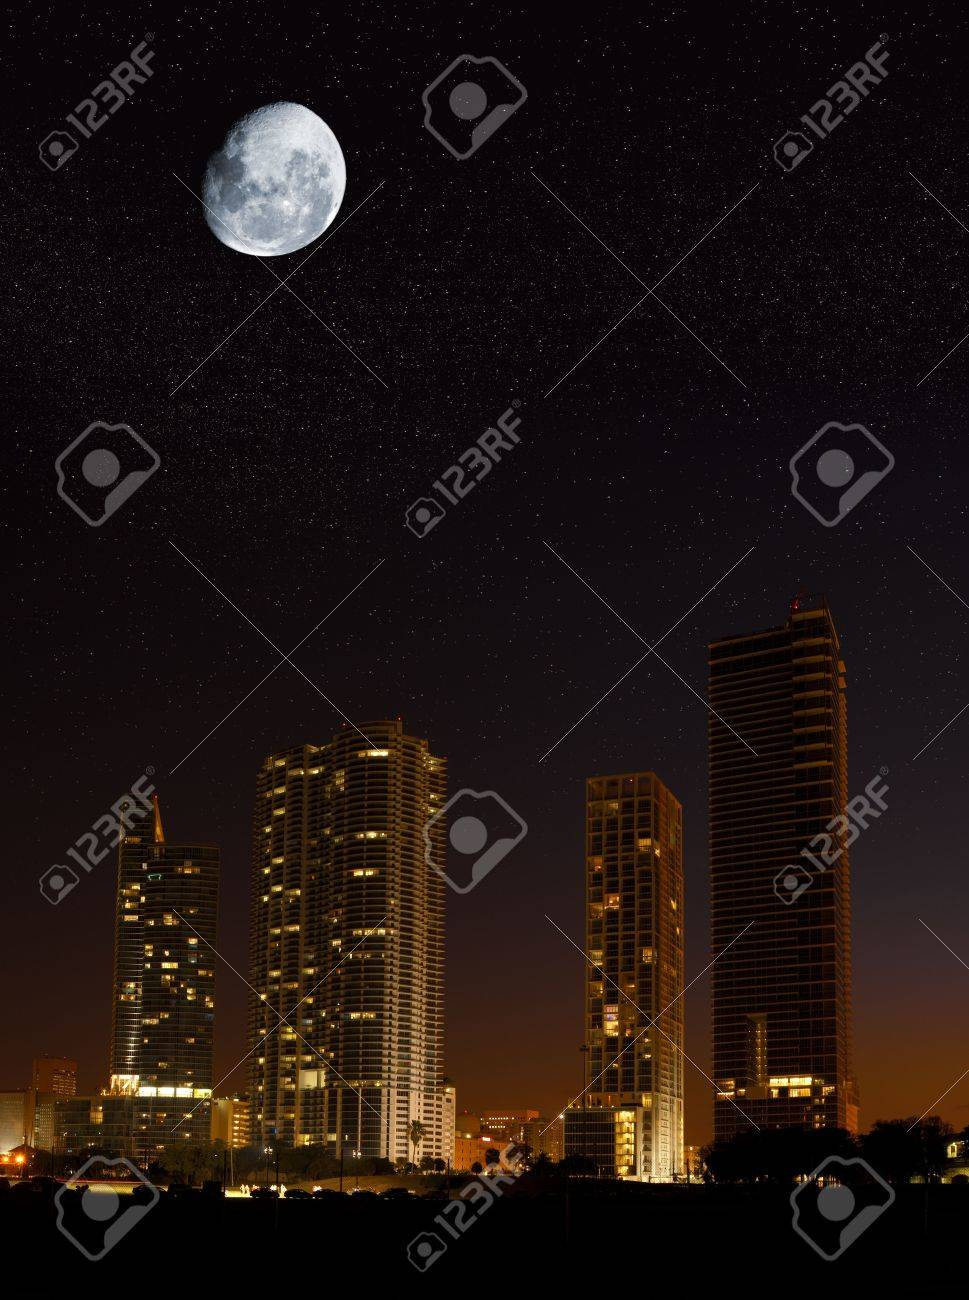 Night in the city - moon showing in the sky over skyscrapers Stock Photo - 4663727